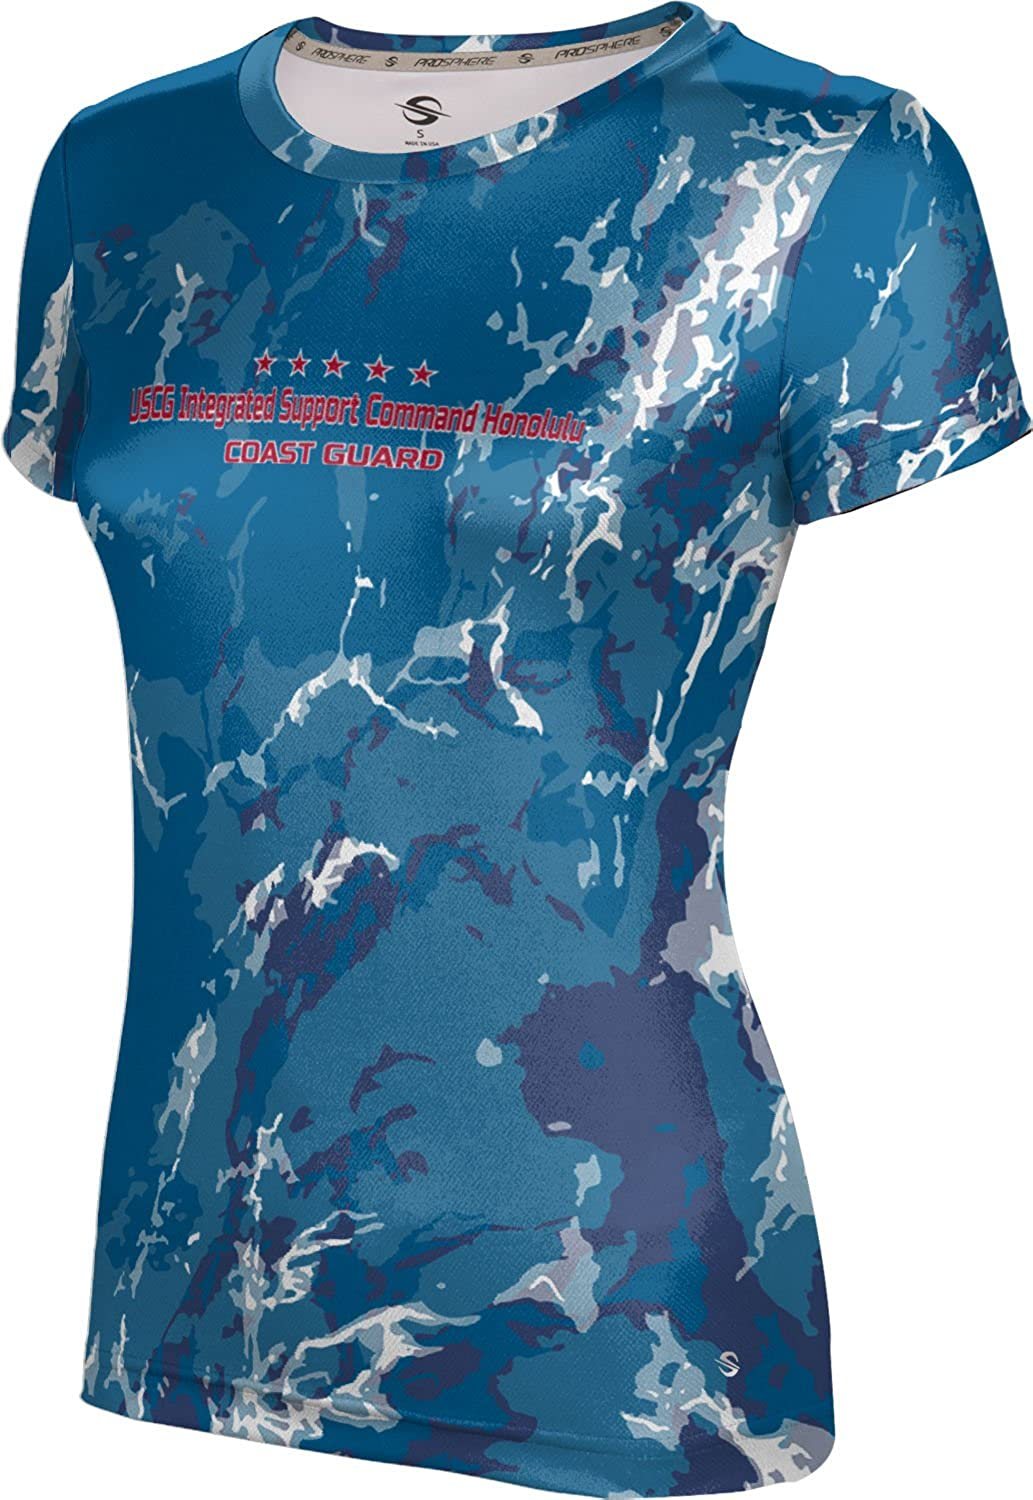 Girls' USCG Integrated Support Command Honolulu Military Marble Shirt (Apparel)